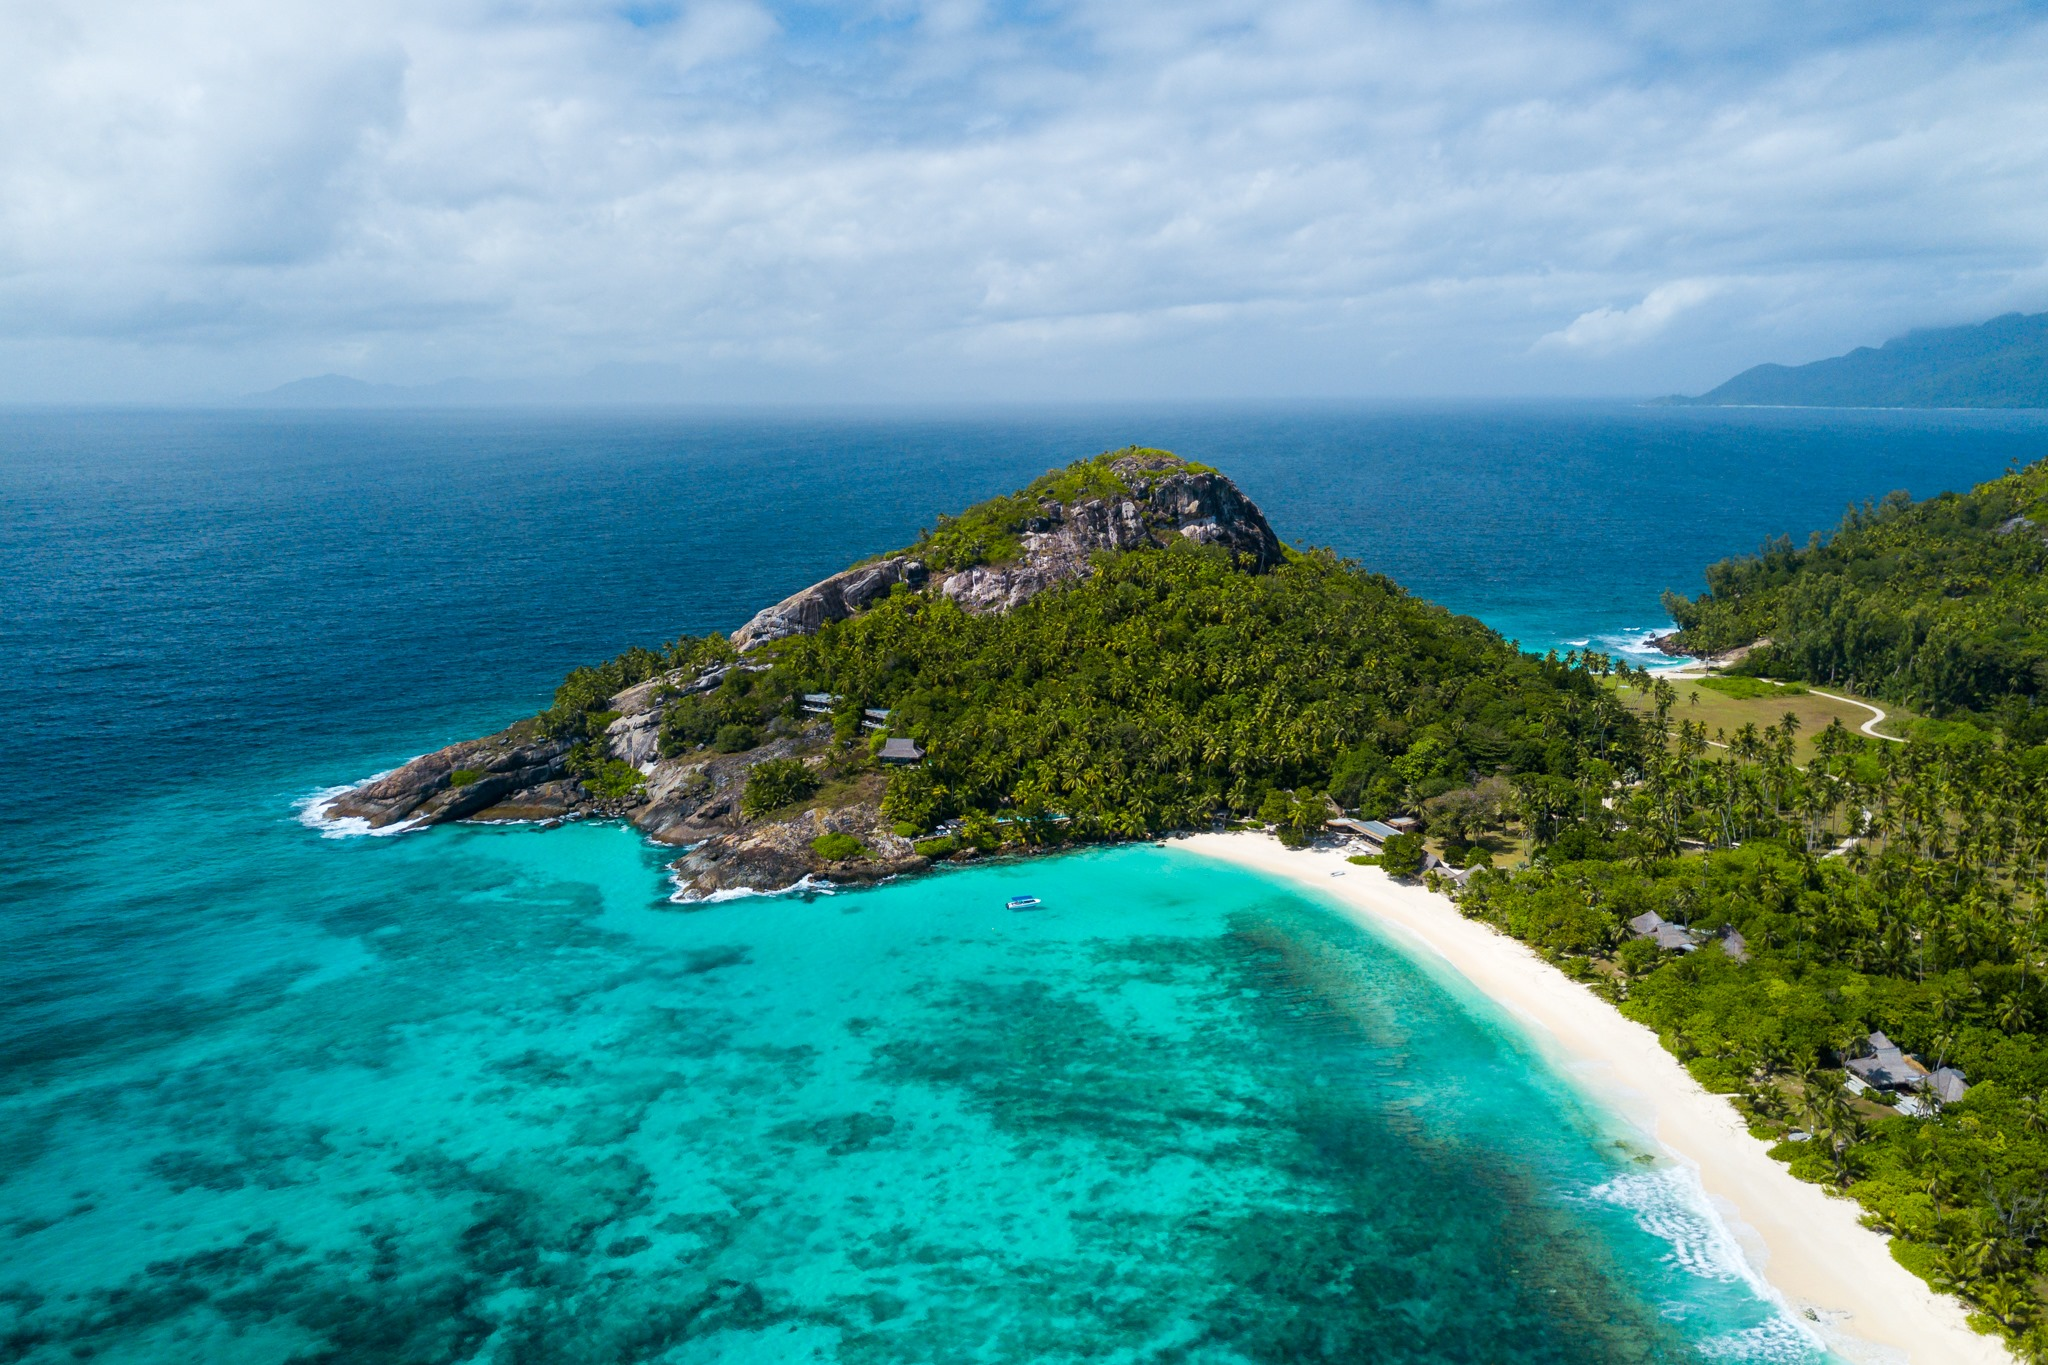 Nick Walton travels to the former pirate lair of the Seychelles, where its rich heritage, colourful history and pristine beaches have made it one of the most sought after destinations in the world.